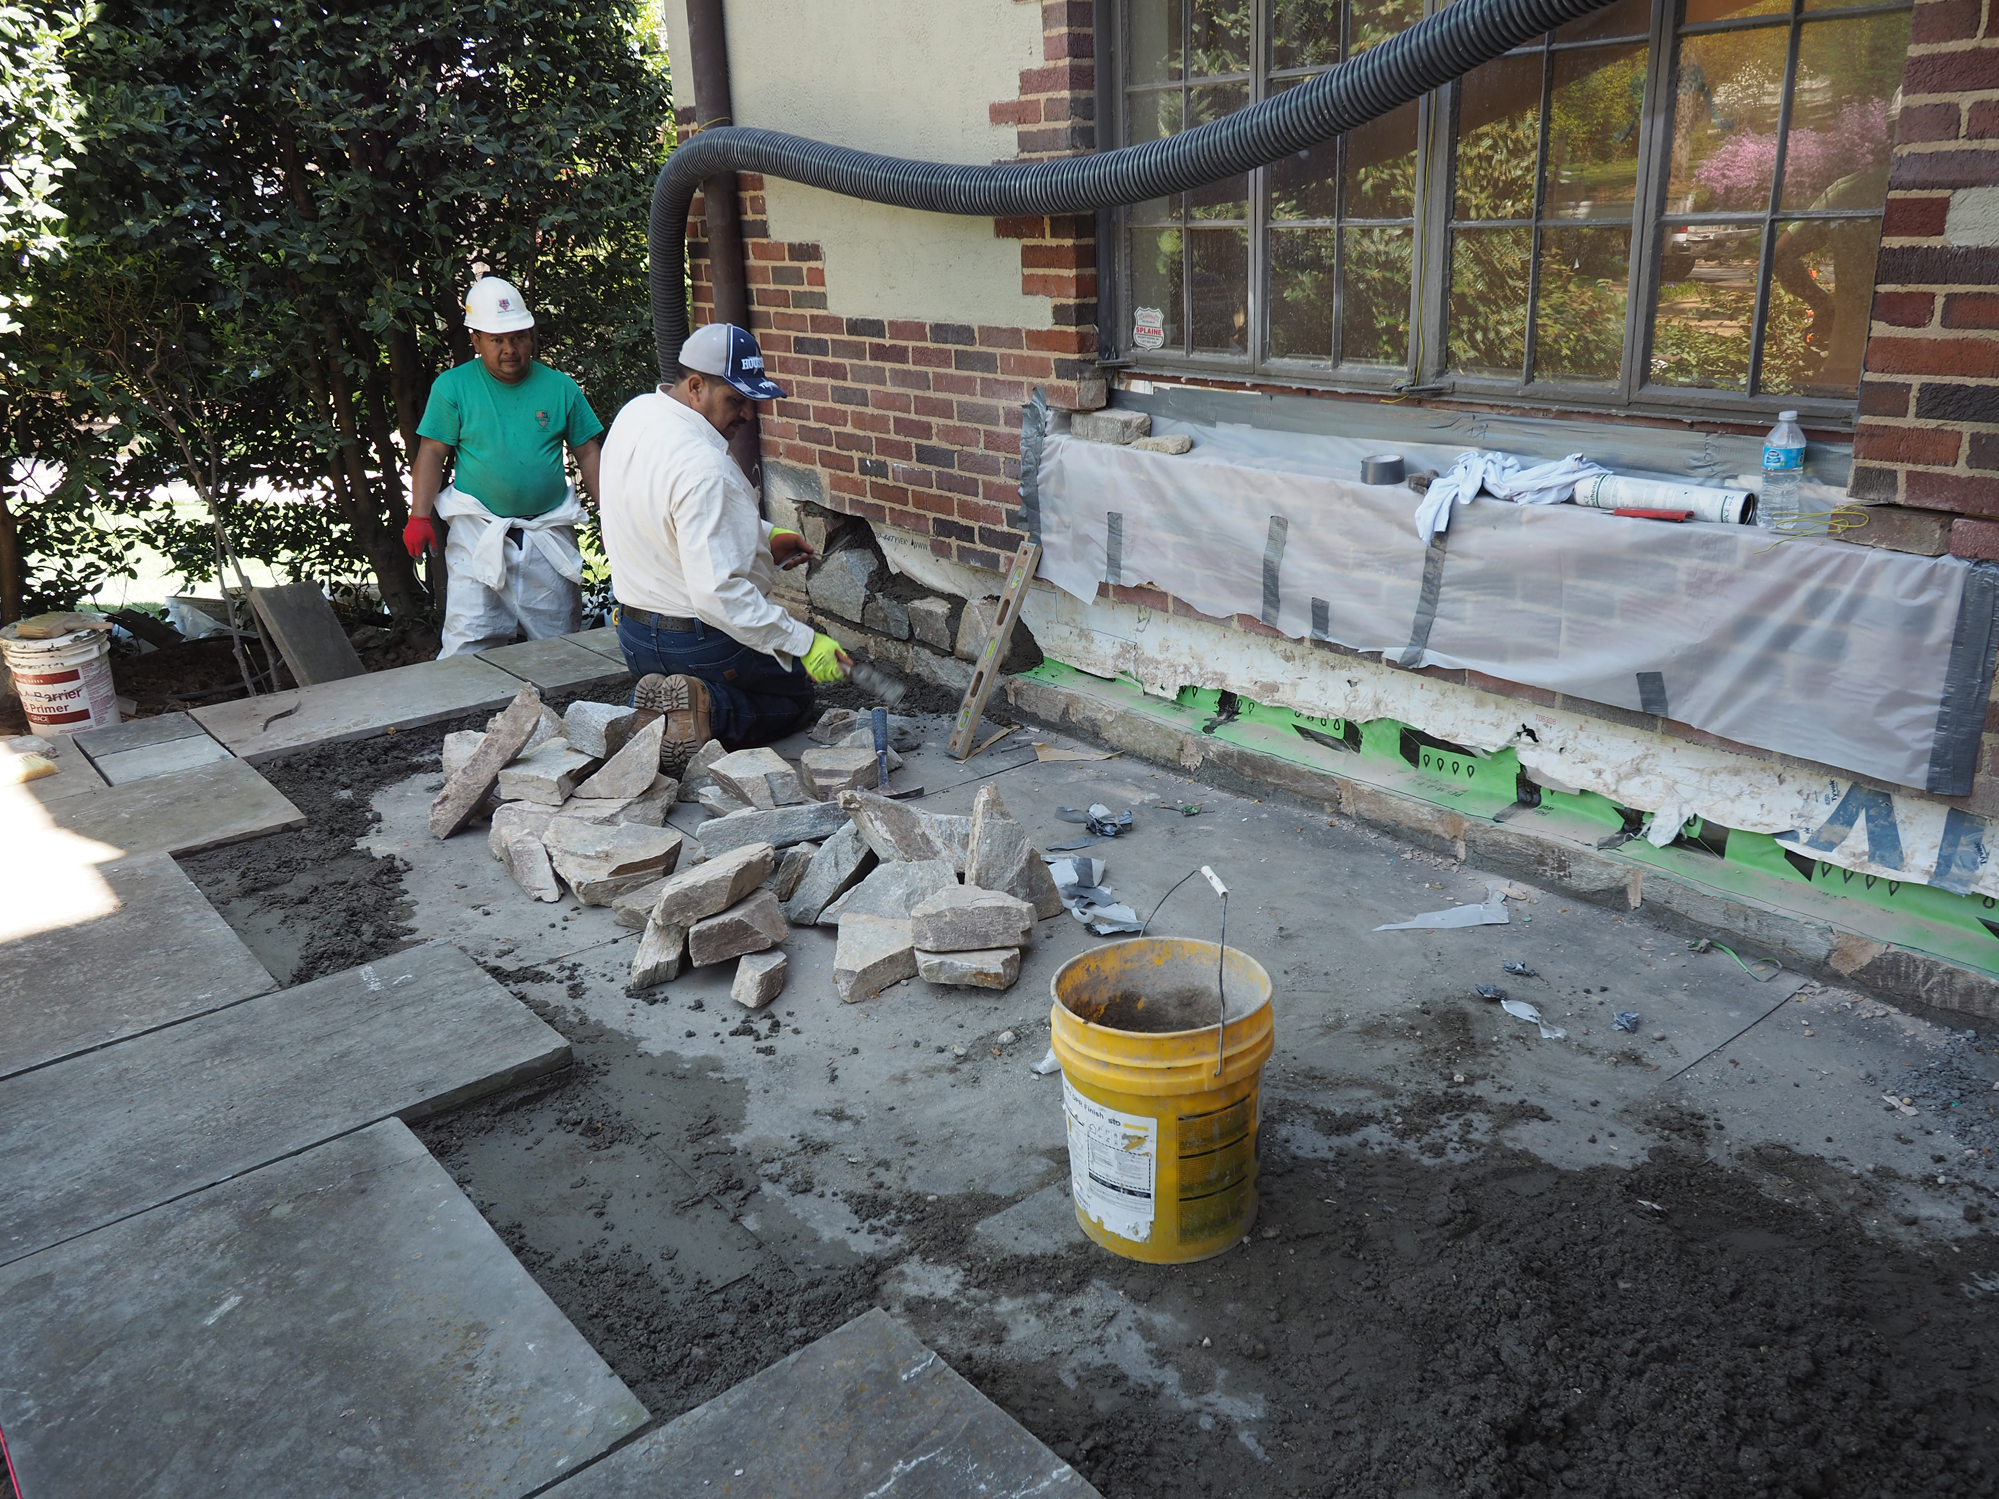 Exceptionnel Repairing Stone Patios Over Living Space | JLC Online | Roof Decking,  Roofing, Roof Underlayment, Moisture Barriers, Decks